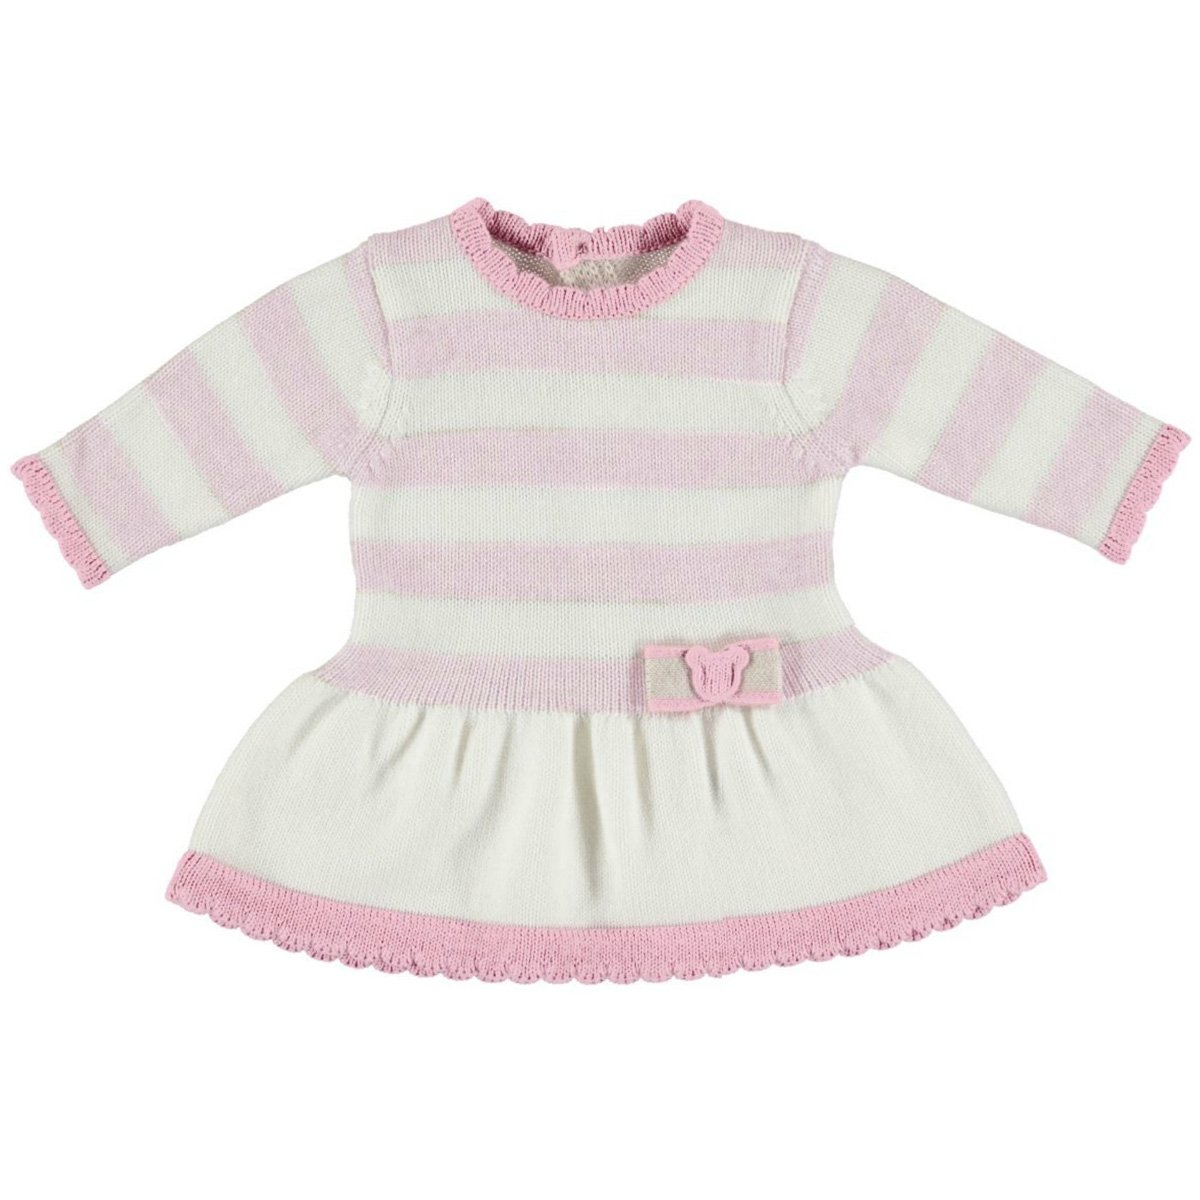 89f591cbf631 Mayoral Baby Girls Knitted Dress In Ivory And Pink Stripes From 2017 ...